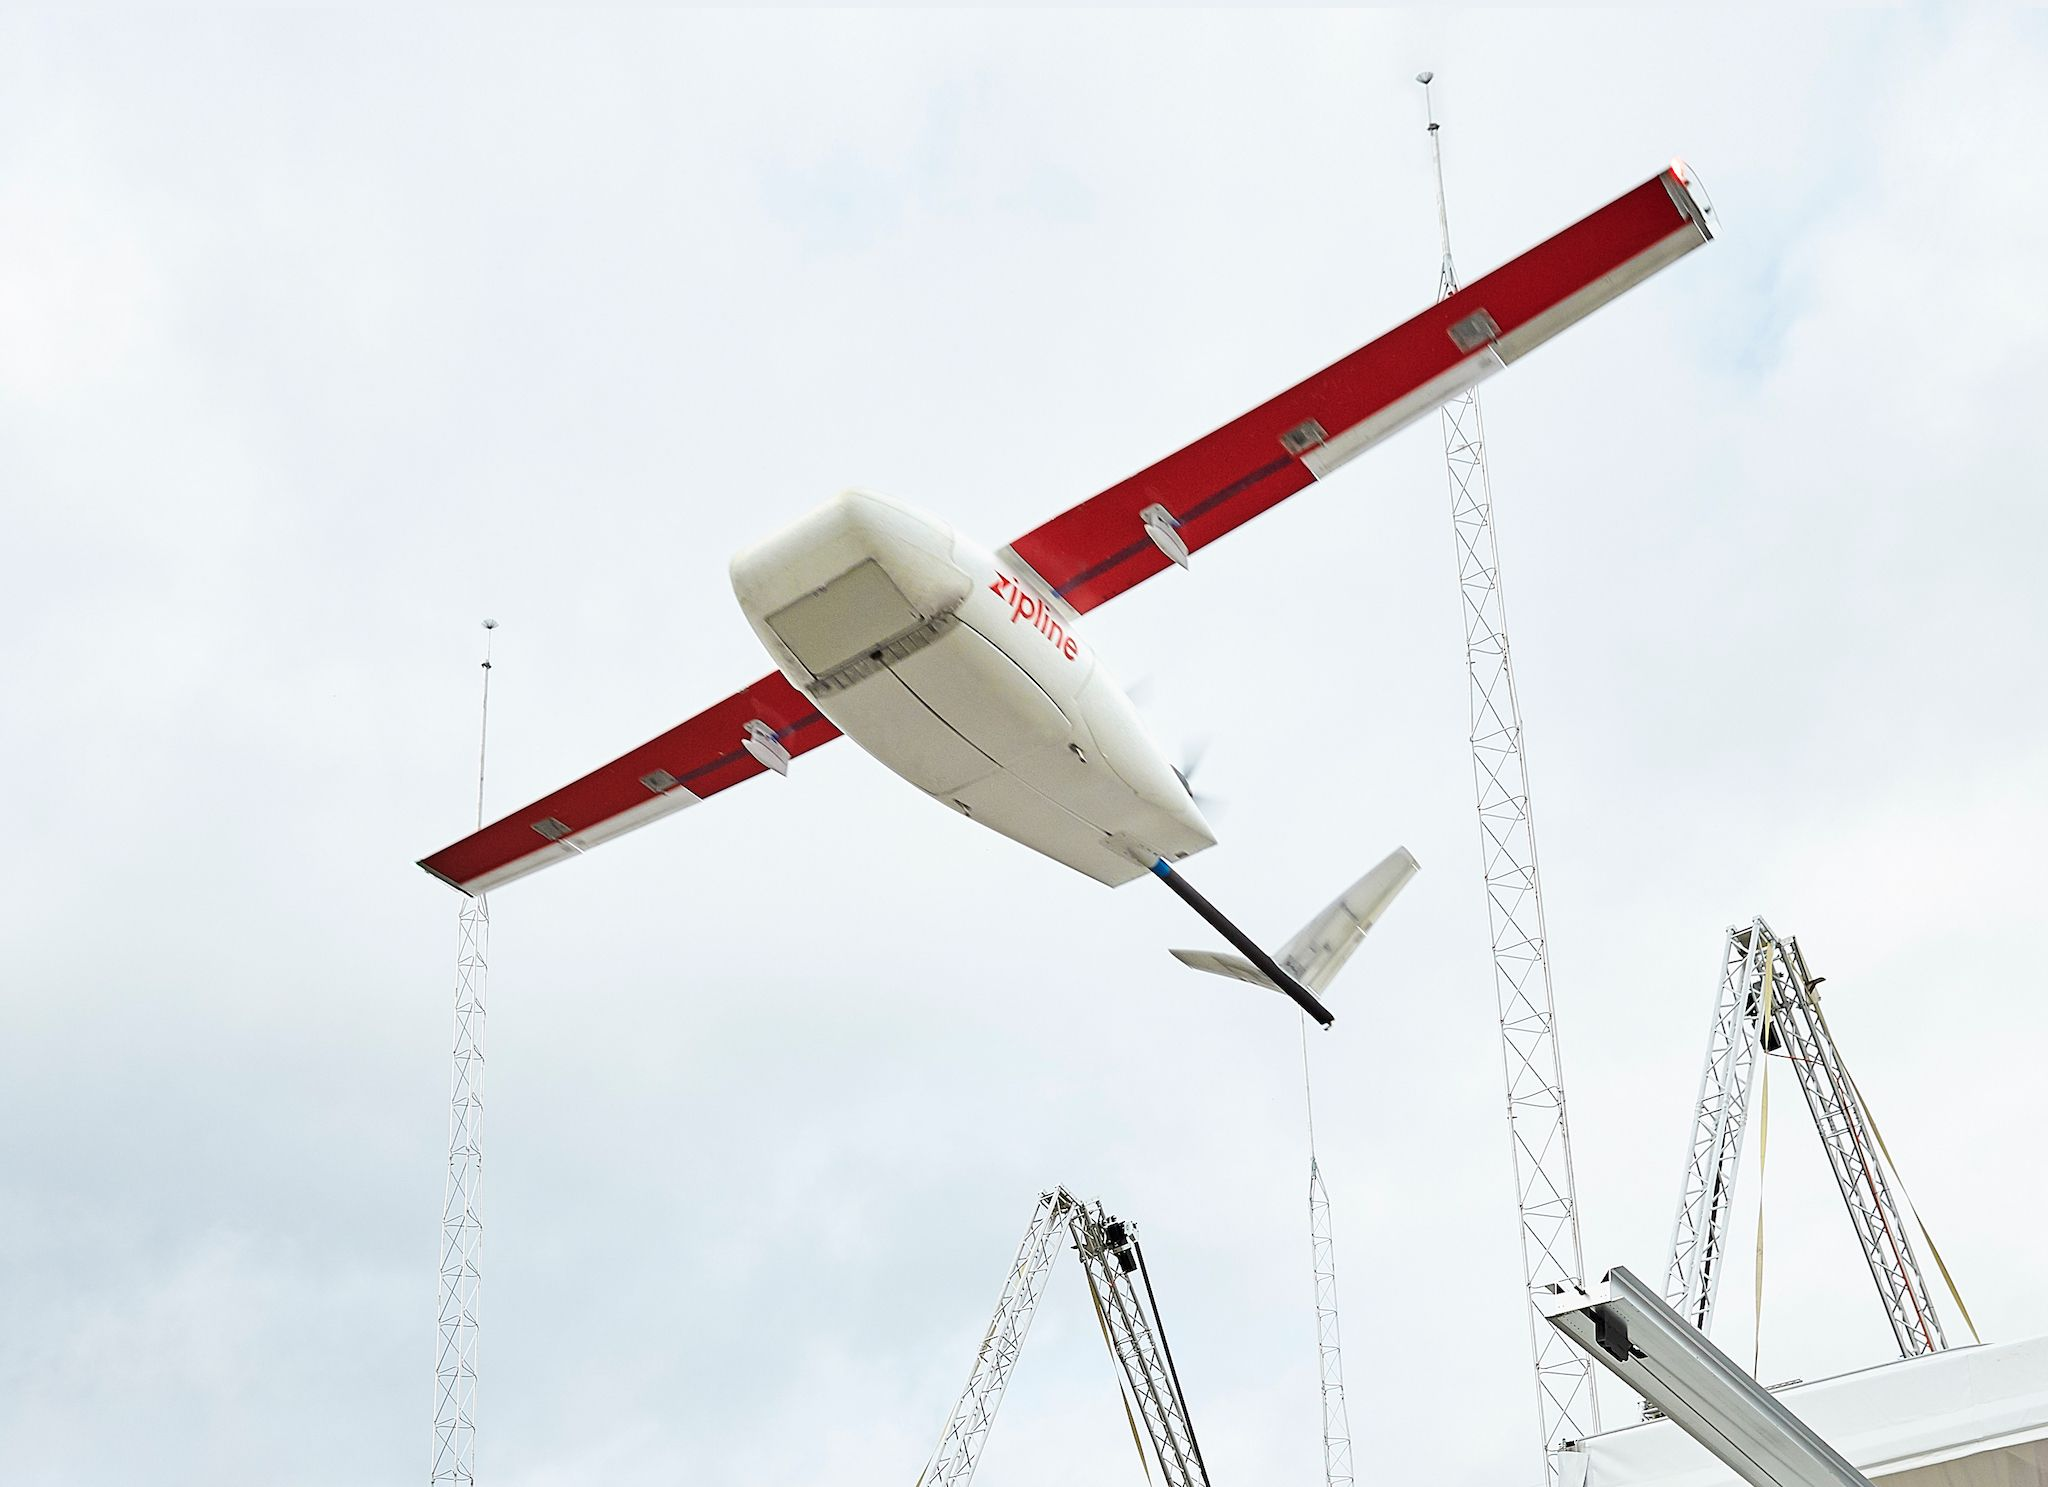 Zipline claims that its Ghana operation will be 'the largest drone delivery network of any kind in history.'